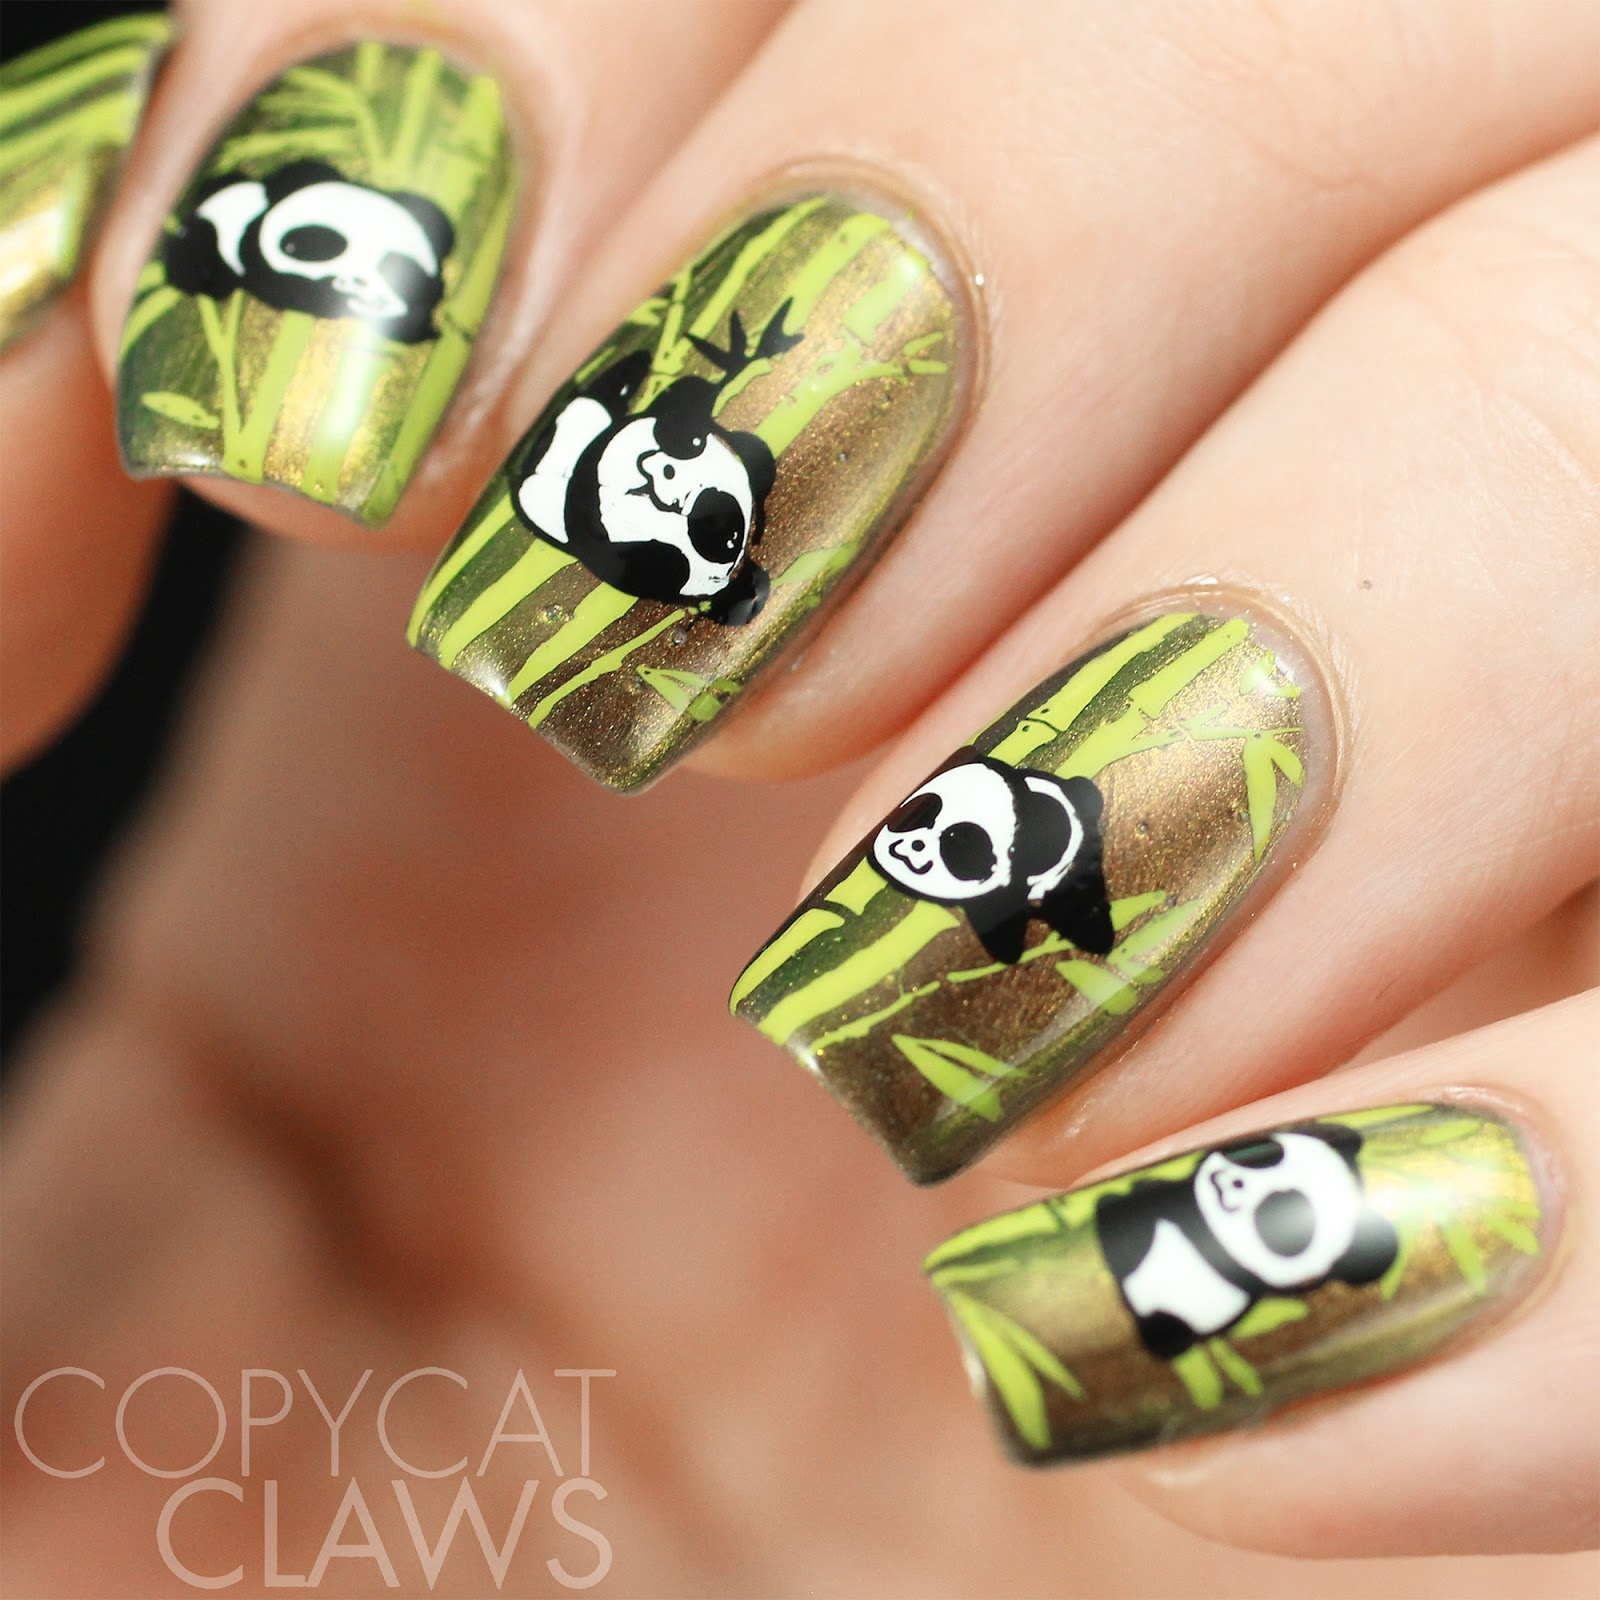 Copycat claws the digit al dozen does rainforest panda nails panda nail stamping prinsesfo Image collections